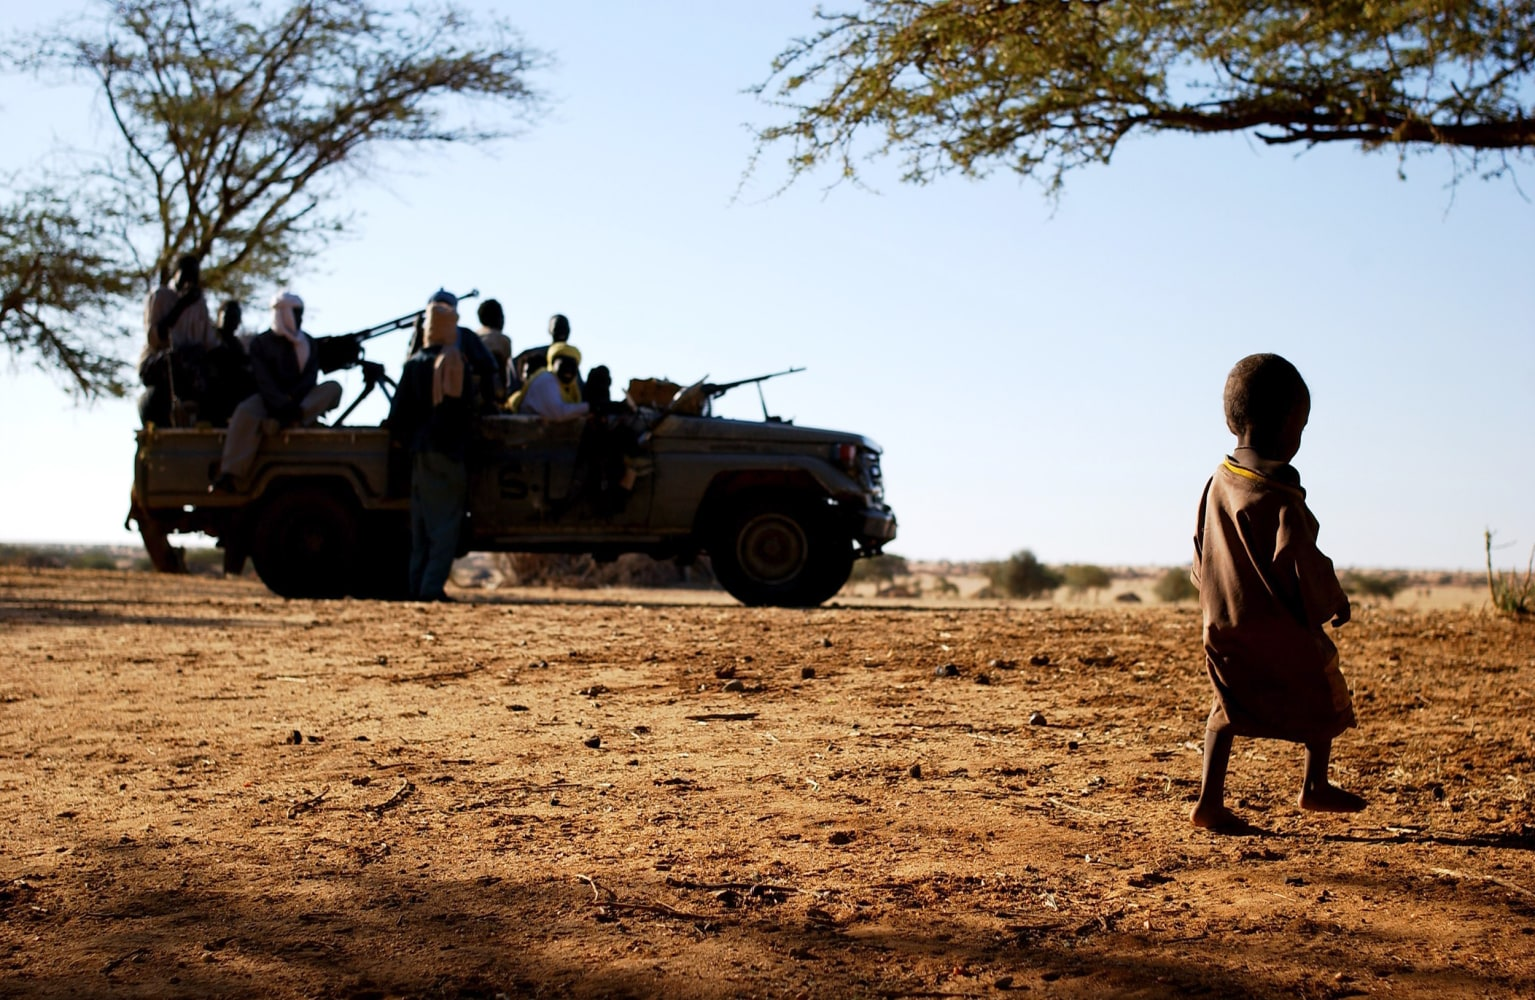 sudan crisis amnesty report cites evidence government